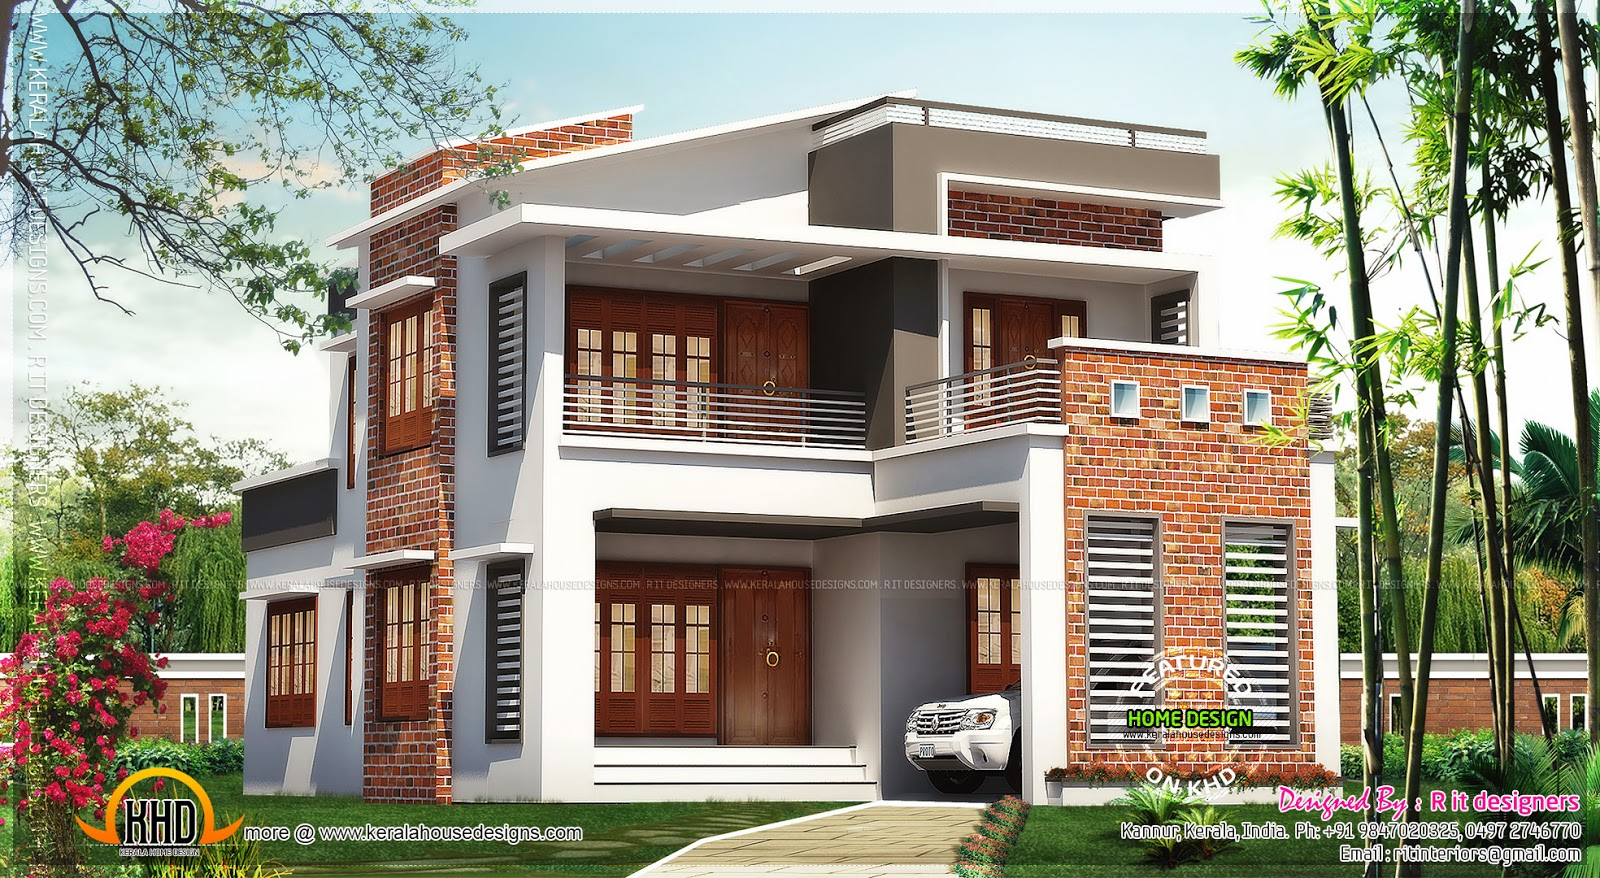 Brick mix house exterior design kerala home design and for House outside design in india